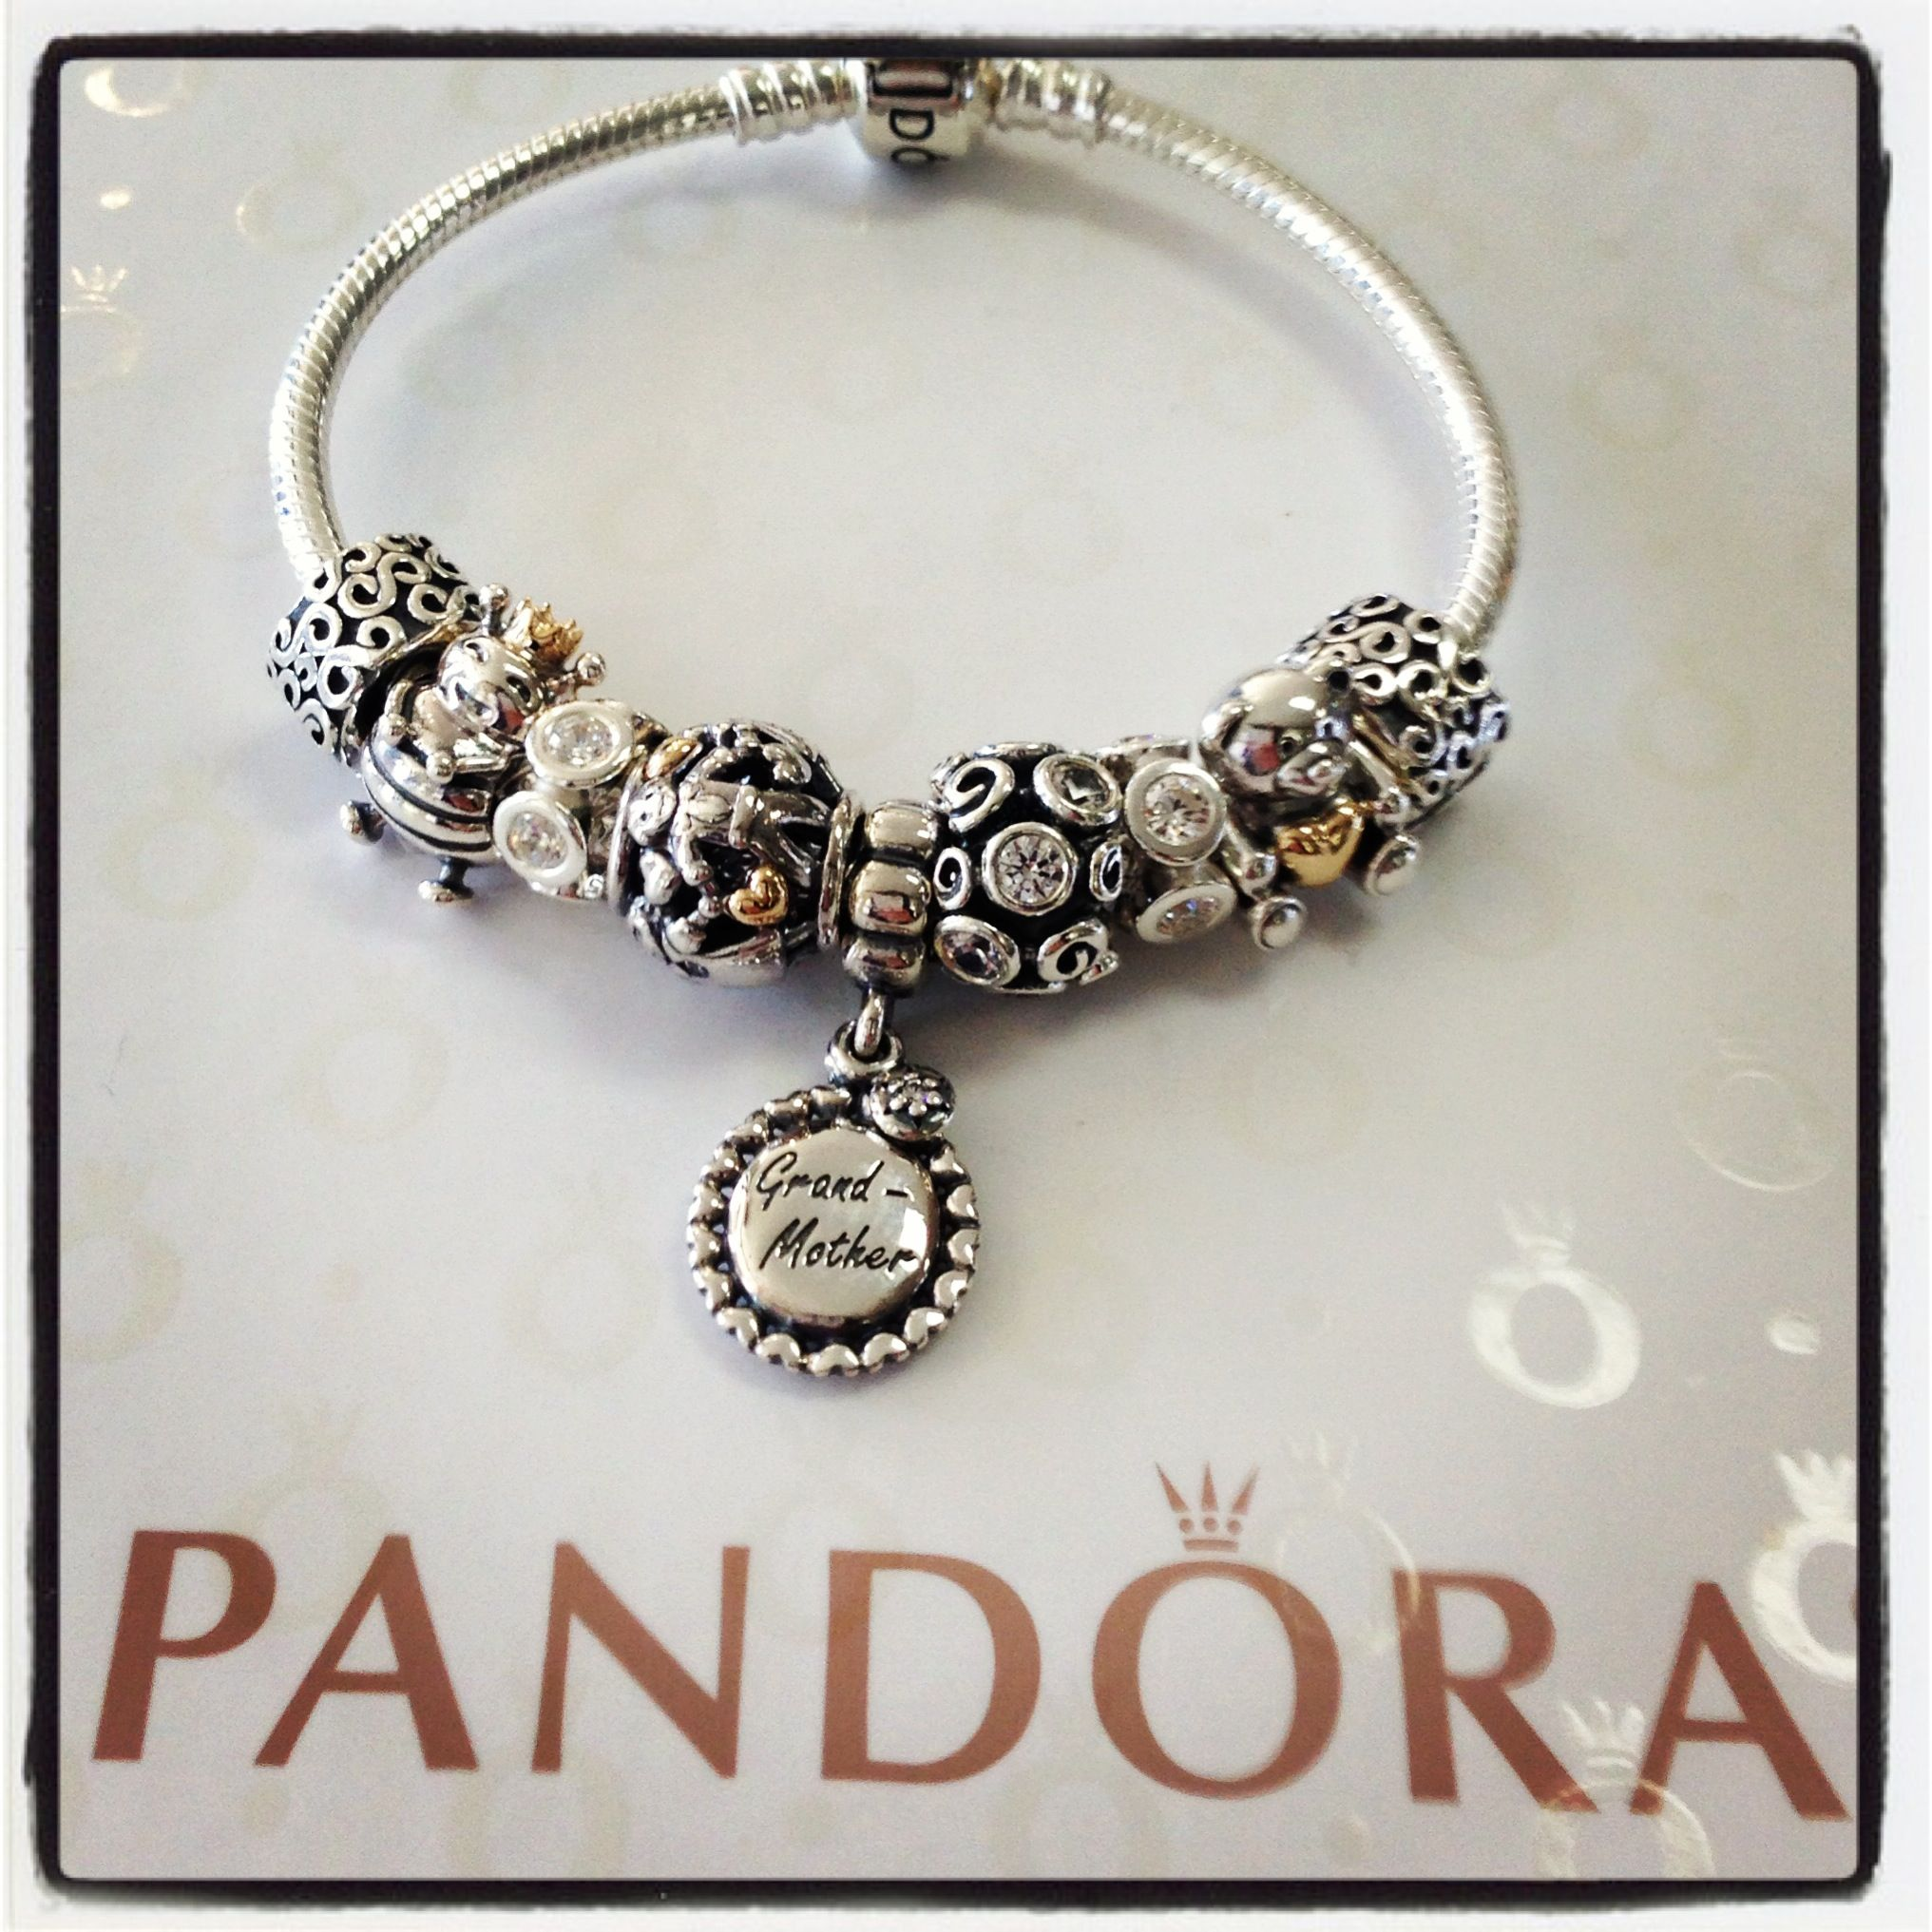 grandmother pandora charm